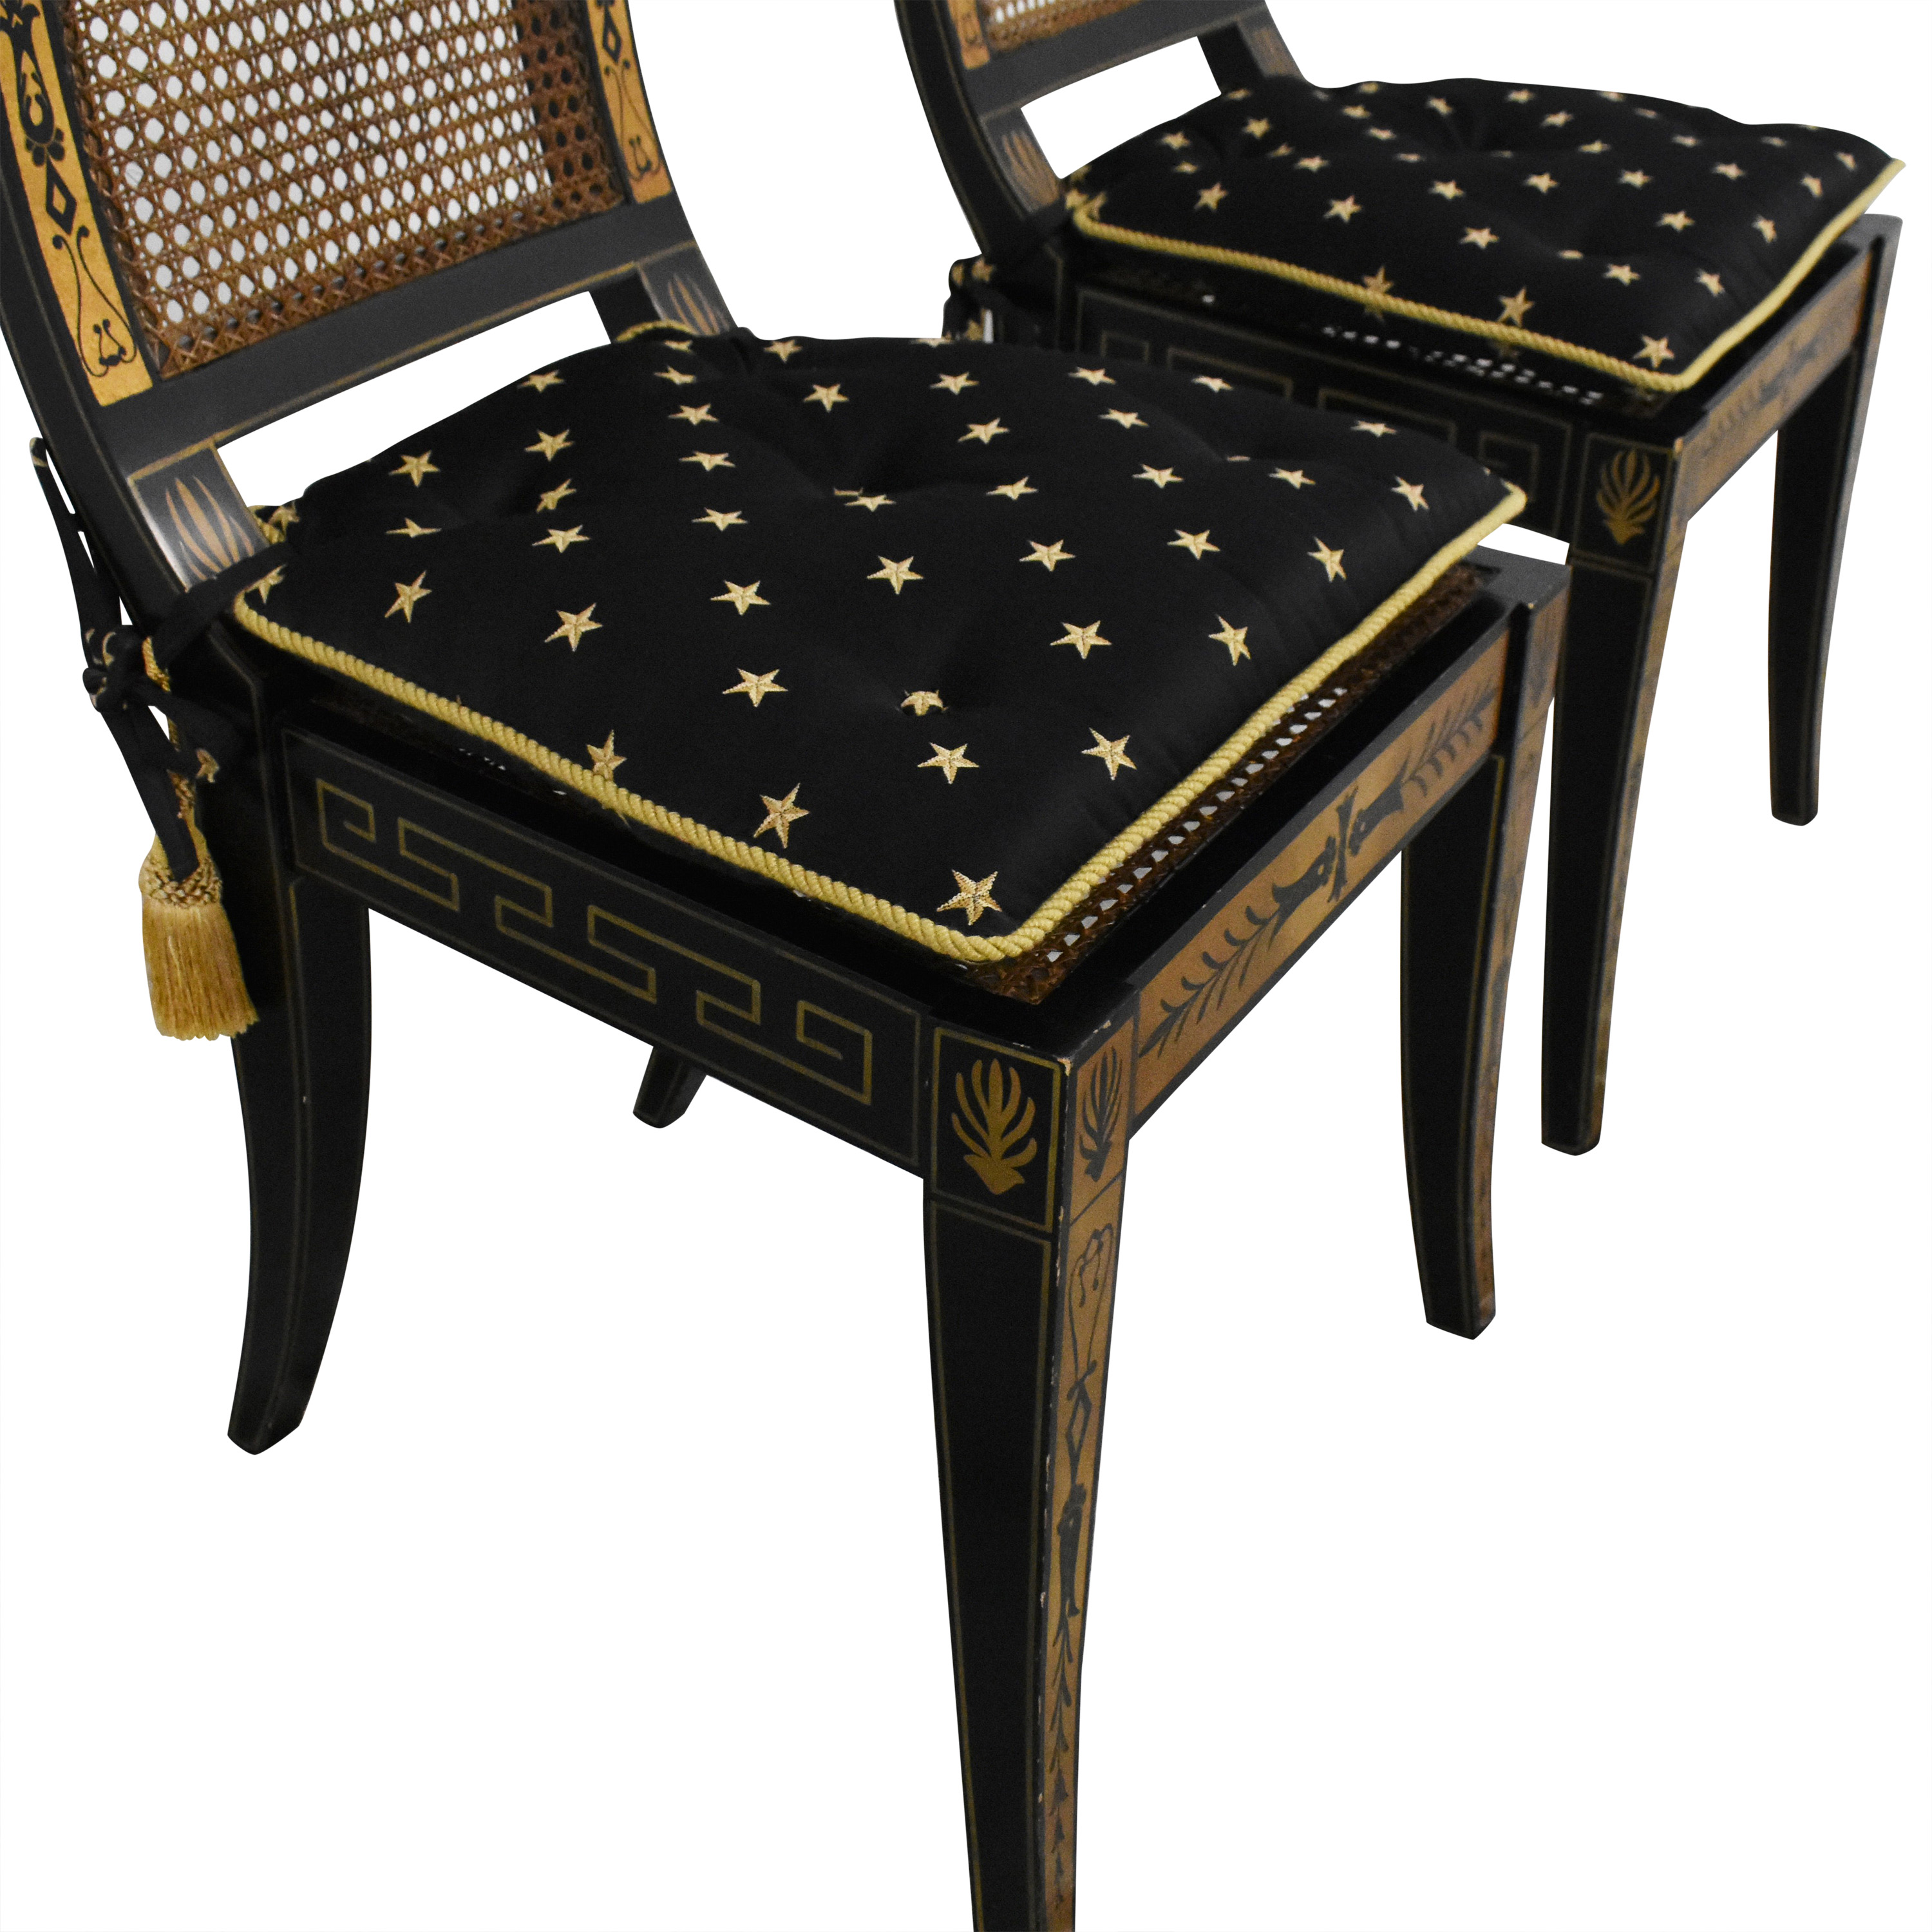 Maitland-Smith Decorative Dining Chairs with Cushions / Chairs